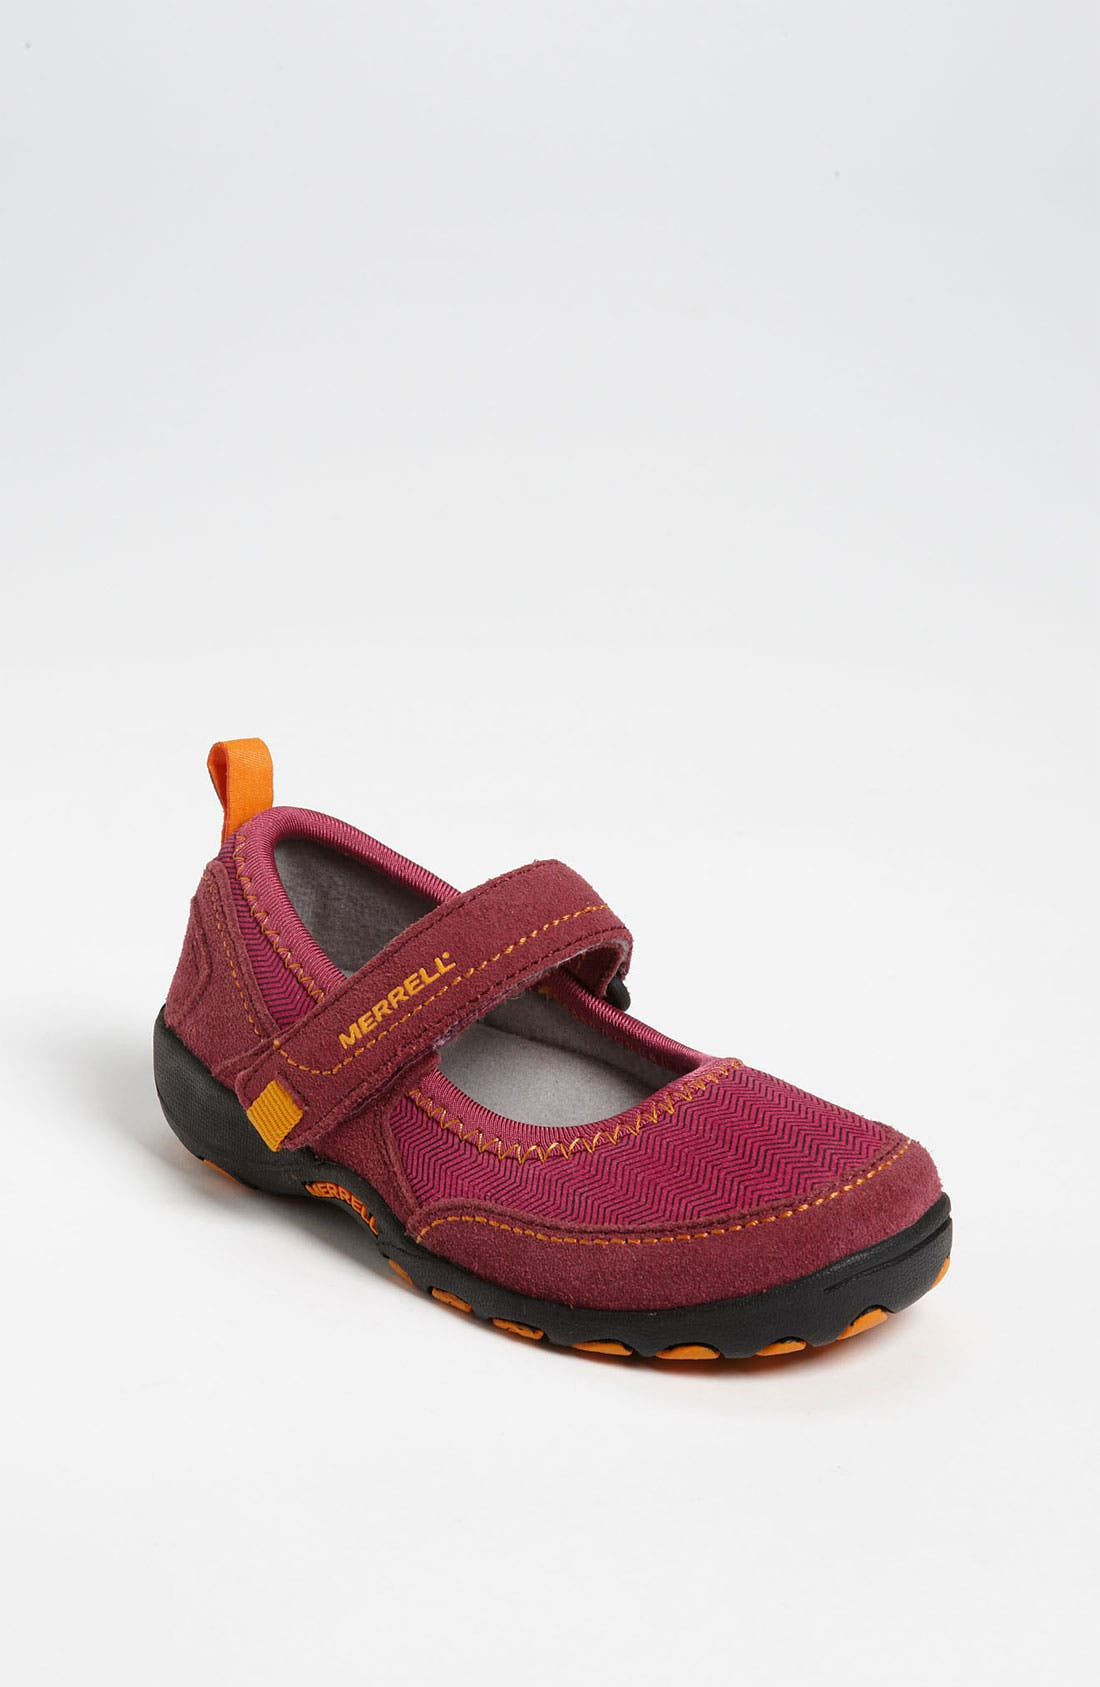 Alternate Image 1 Selected - Merrell 'Mimosa' Mary Jane Sneaker (Toddler, Little Kid & Big Kid)